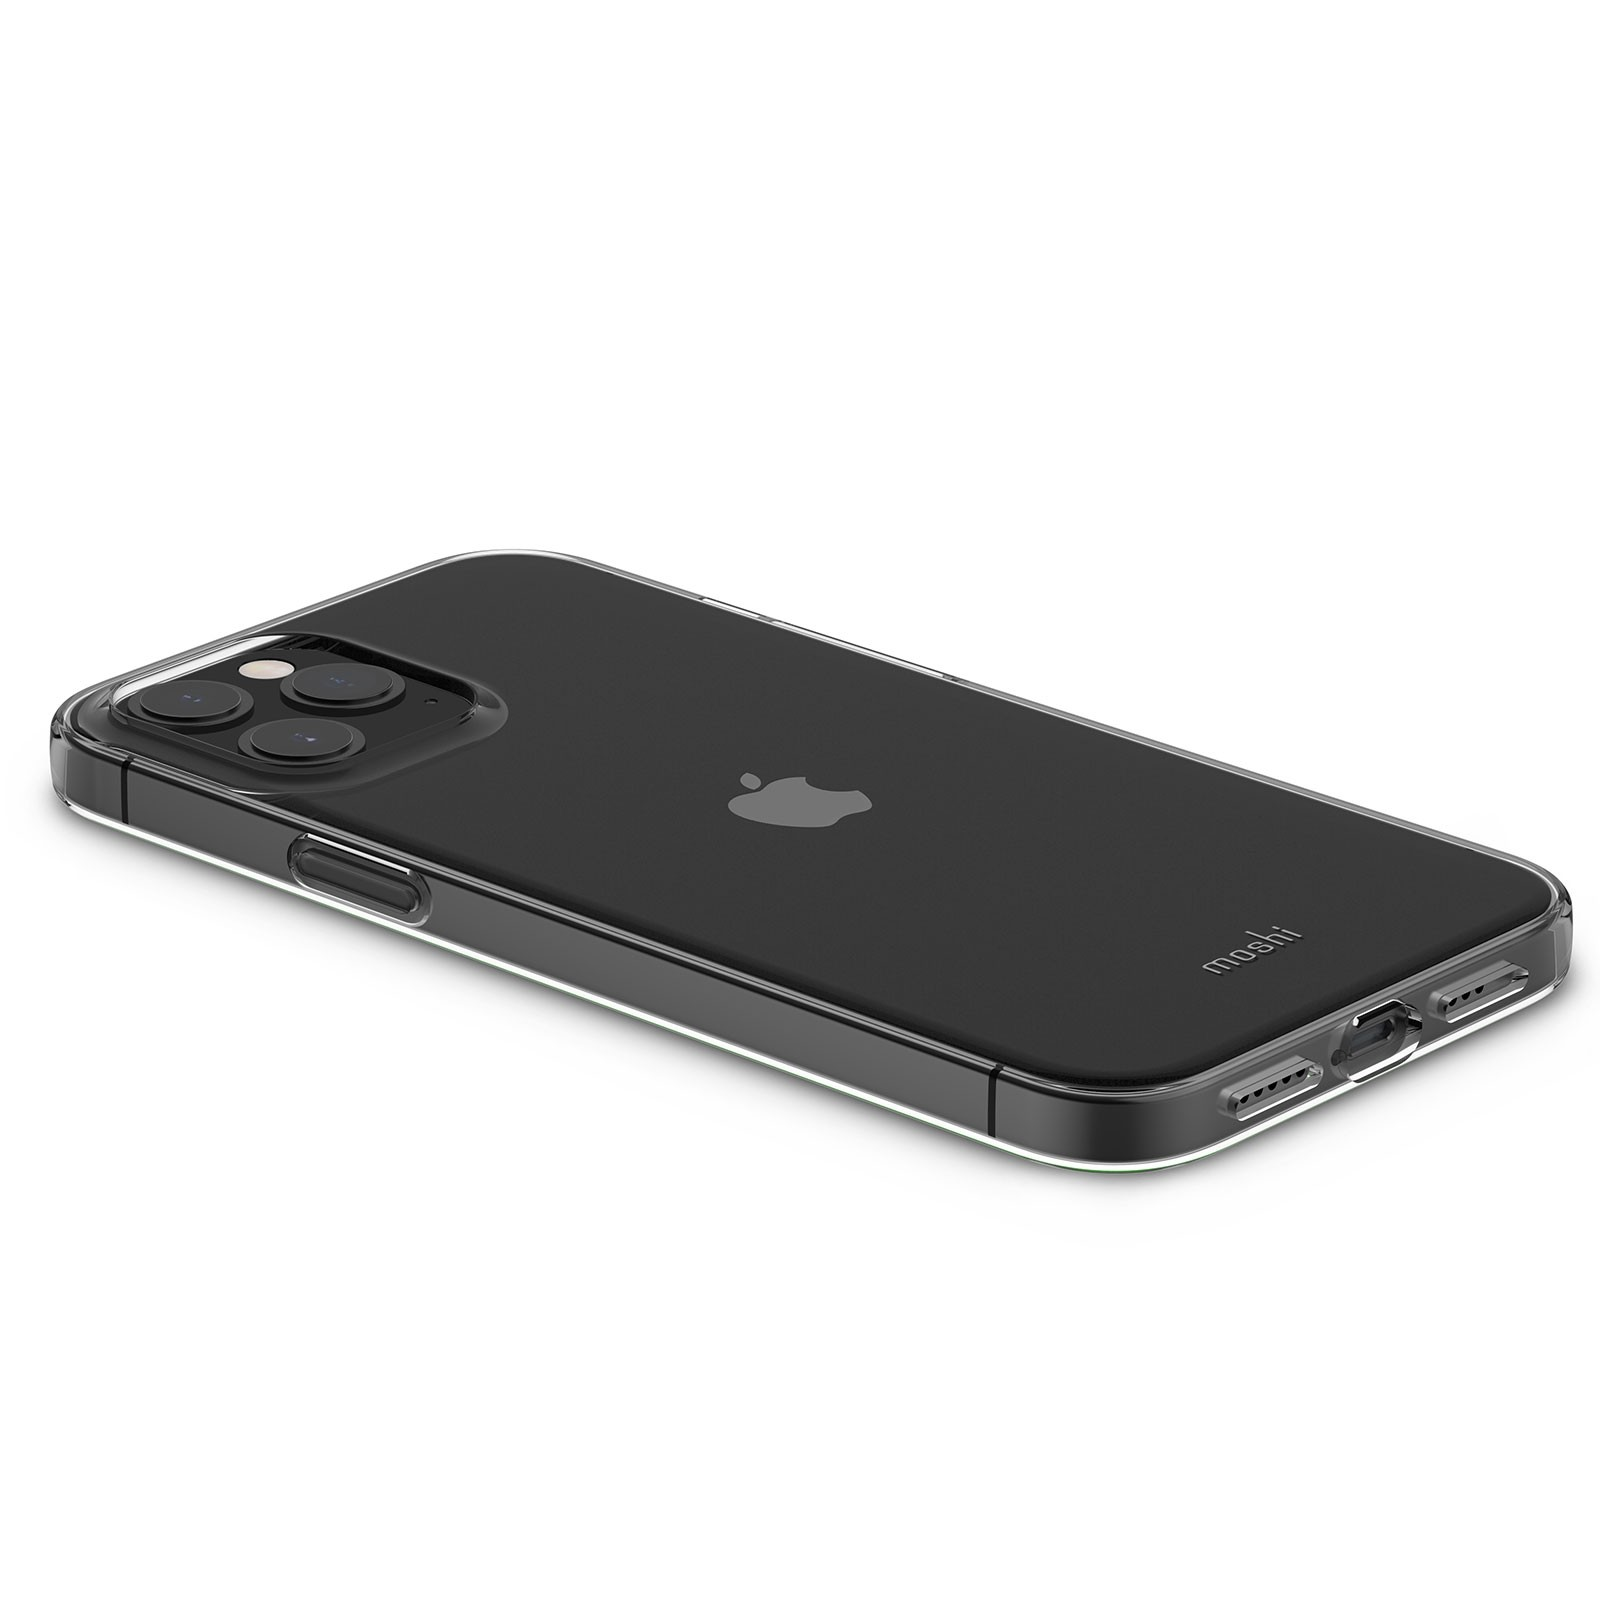 Moshi Vitros Clear Case for iPhone 12 Pro Max - Crystal Clear, 99MO128903